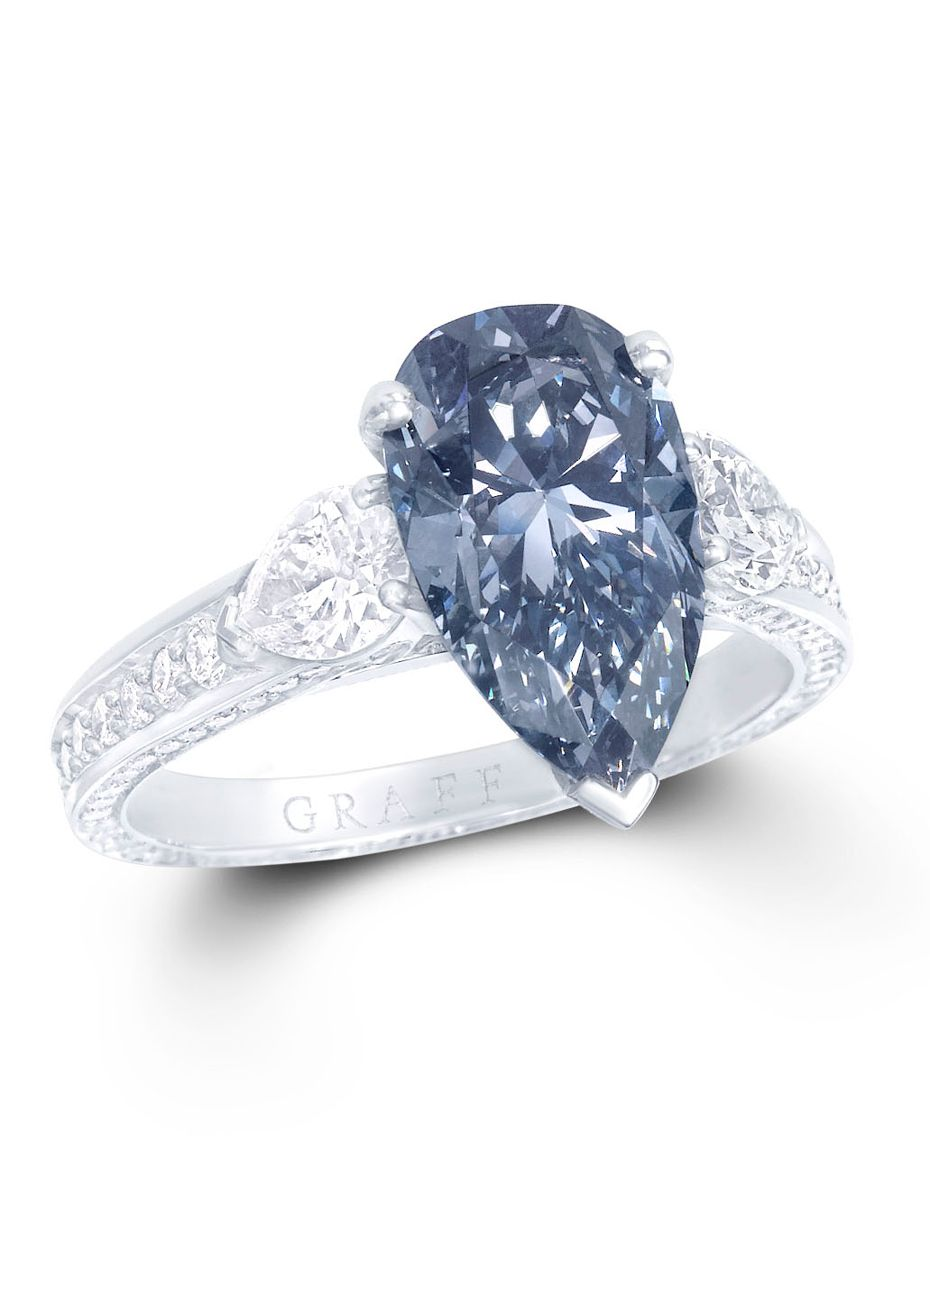 Blue Diamond Engagement Rings The Rarest Of Them All Blue Diamond Engagement Ring Blue Diamonds Engagement Jewelry